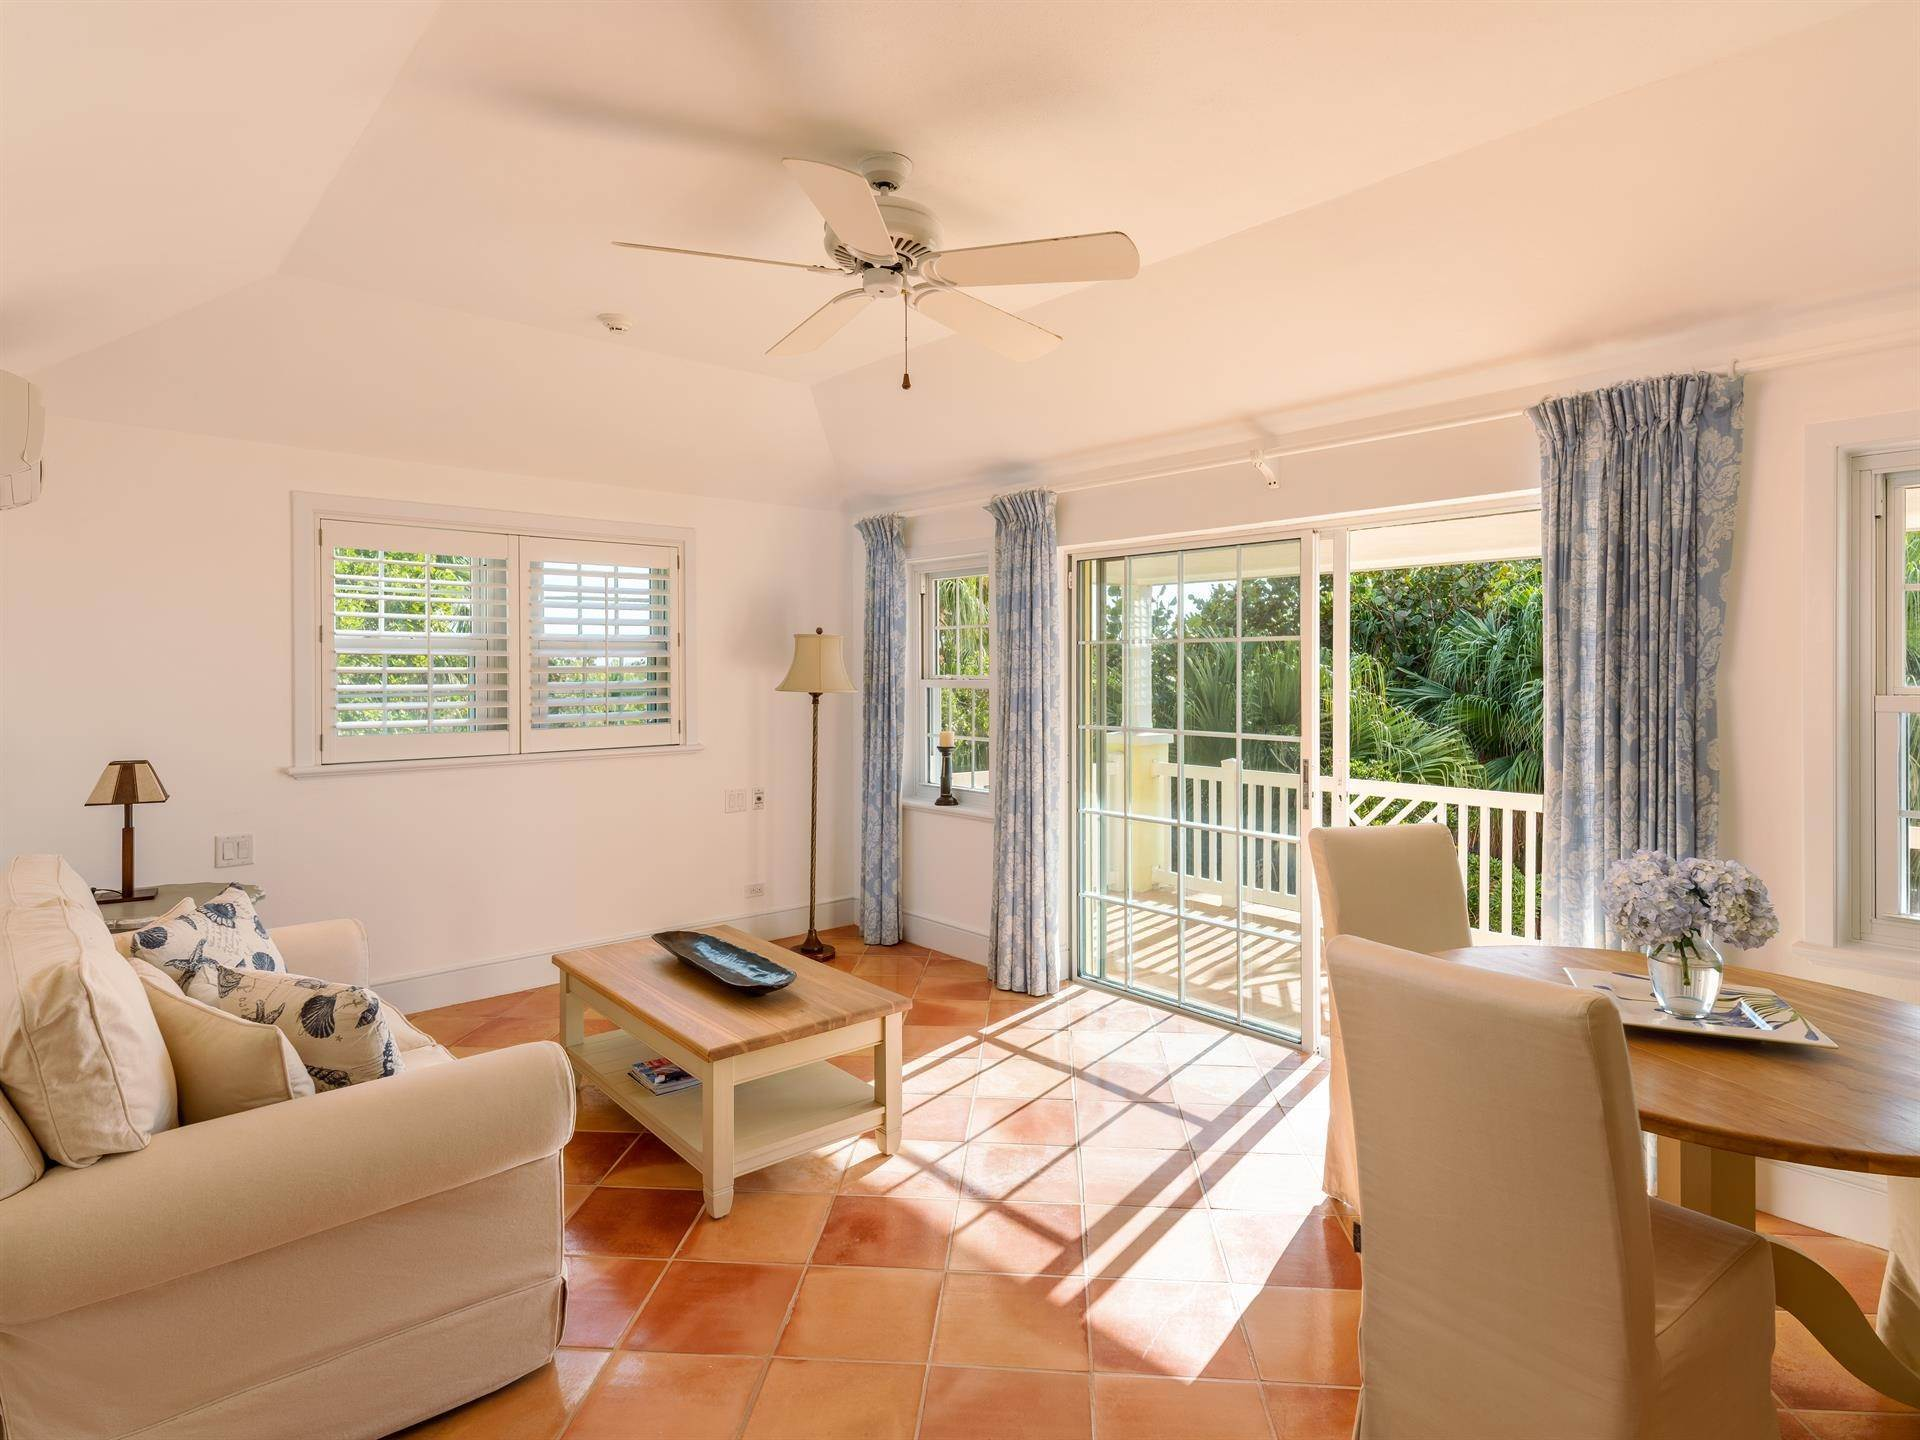 36. Waterfront Property for Sale at Agapanthus On Grape Bay Agapanthus On Grape Bay, 11 Inglewood Lane,Bermuda – Sinclair Realty